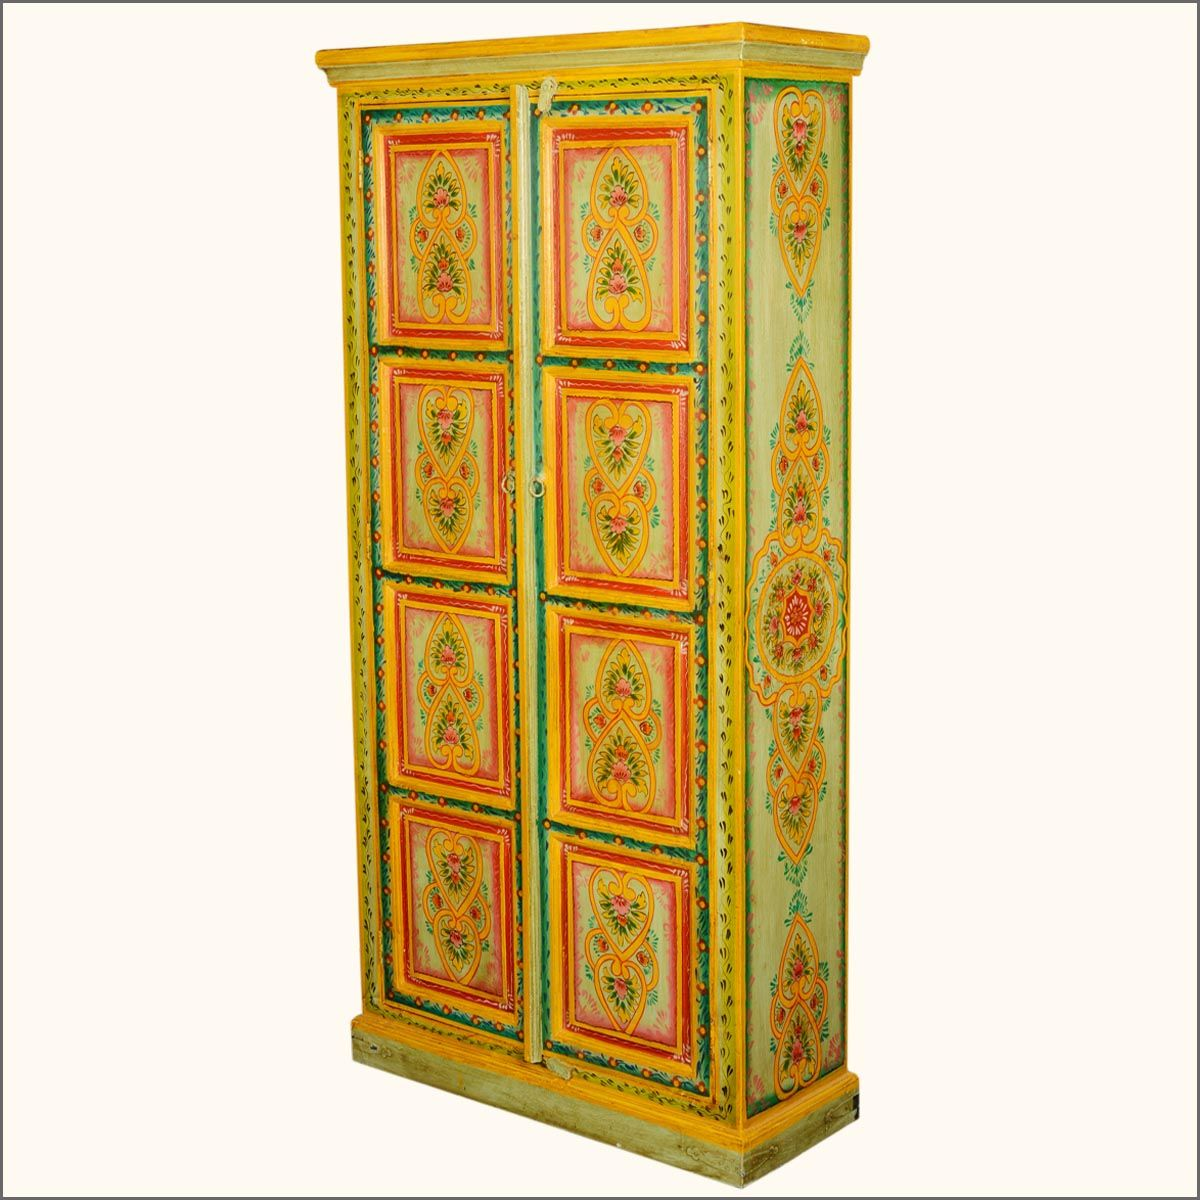 """The intricately painted Asian Designs that decorate our Hearts & Flowers 71.5"""" Tall #Armoire combine a touch of sweetness with magnificent craftsmanship. Bring this free standing closet into your home and control your own space. The expertly hand painted designs appear on the double doors and sides. Open the doors and discover a large 4-shelf armoire with a warm, brown interior. #interiors #contemporaryfurniture #homedecor #furniture #homeinspiration   http://www.sierralivingconcepts.com/"""